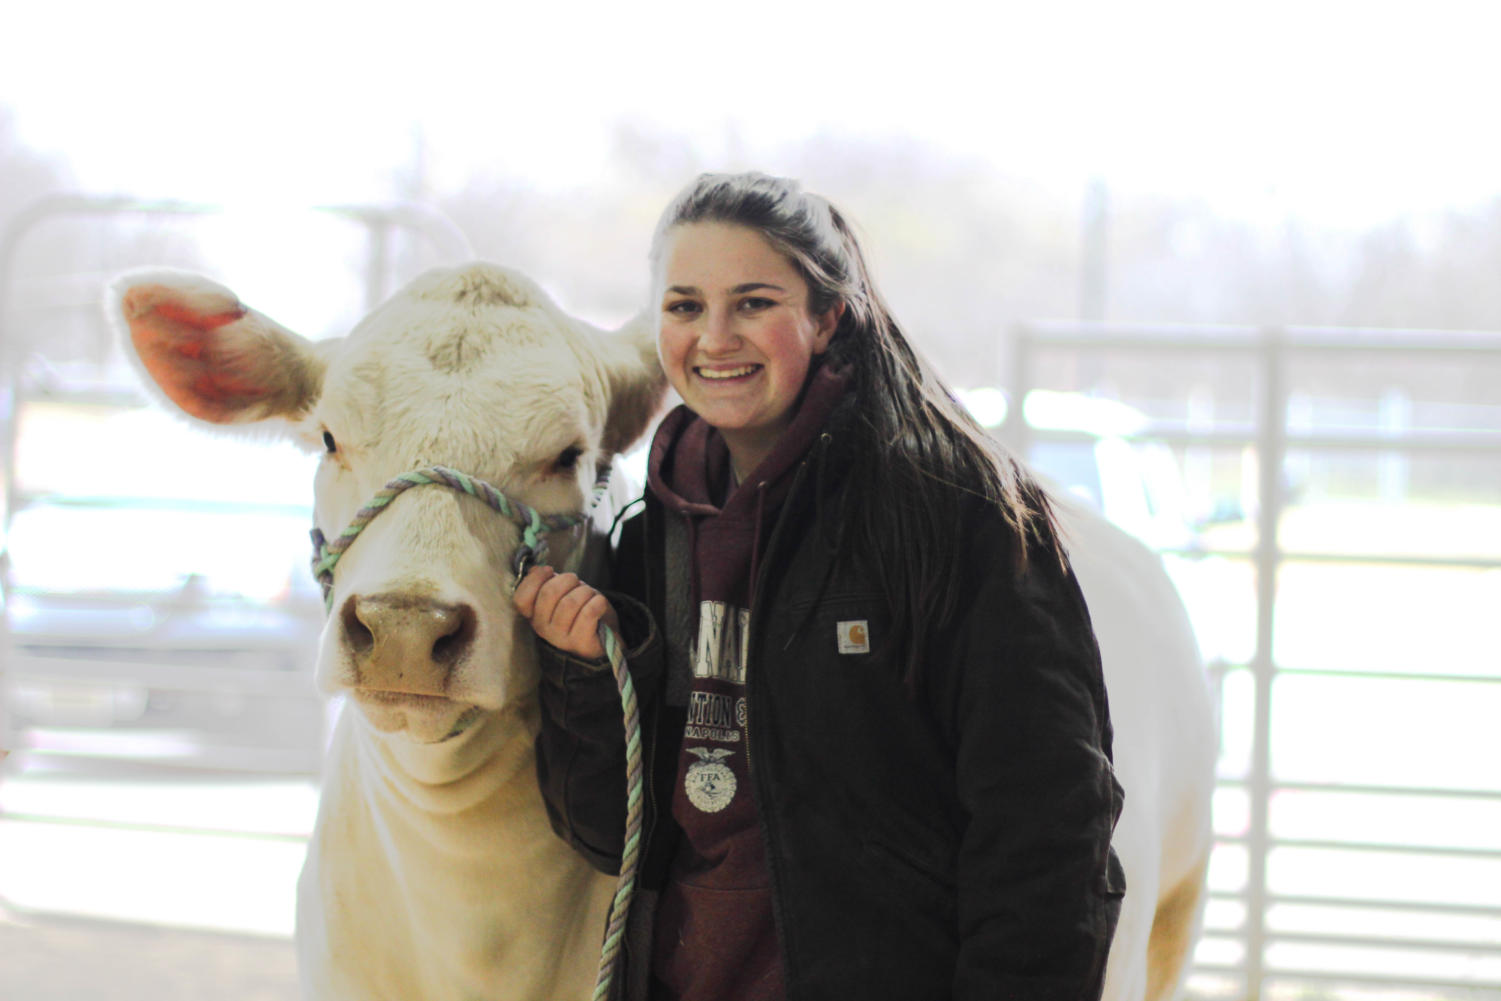 Senior Grace Carver, Vice President of  FFA, shows off one of her cows, Daisy outside of the LISD Agriculture barn in Lewisville. Carver goes to the barn everyday to feed, wash and train her animals.